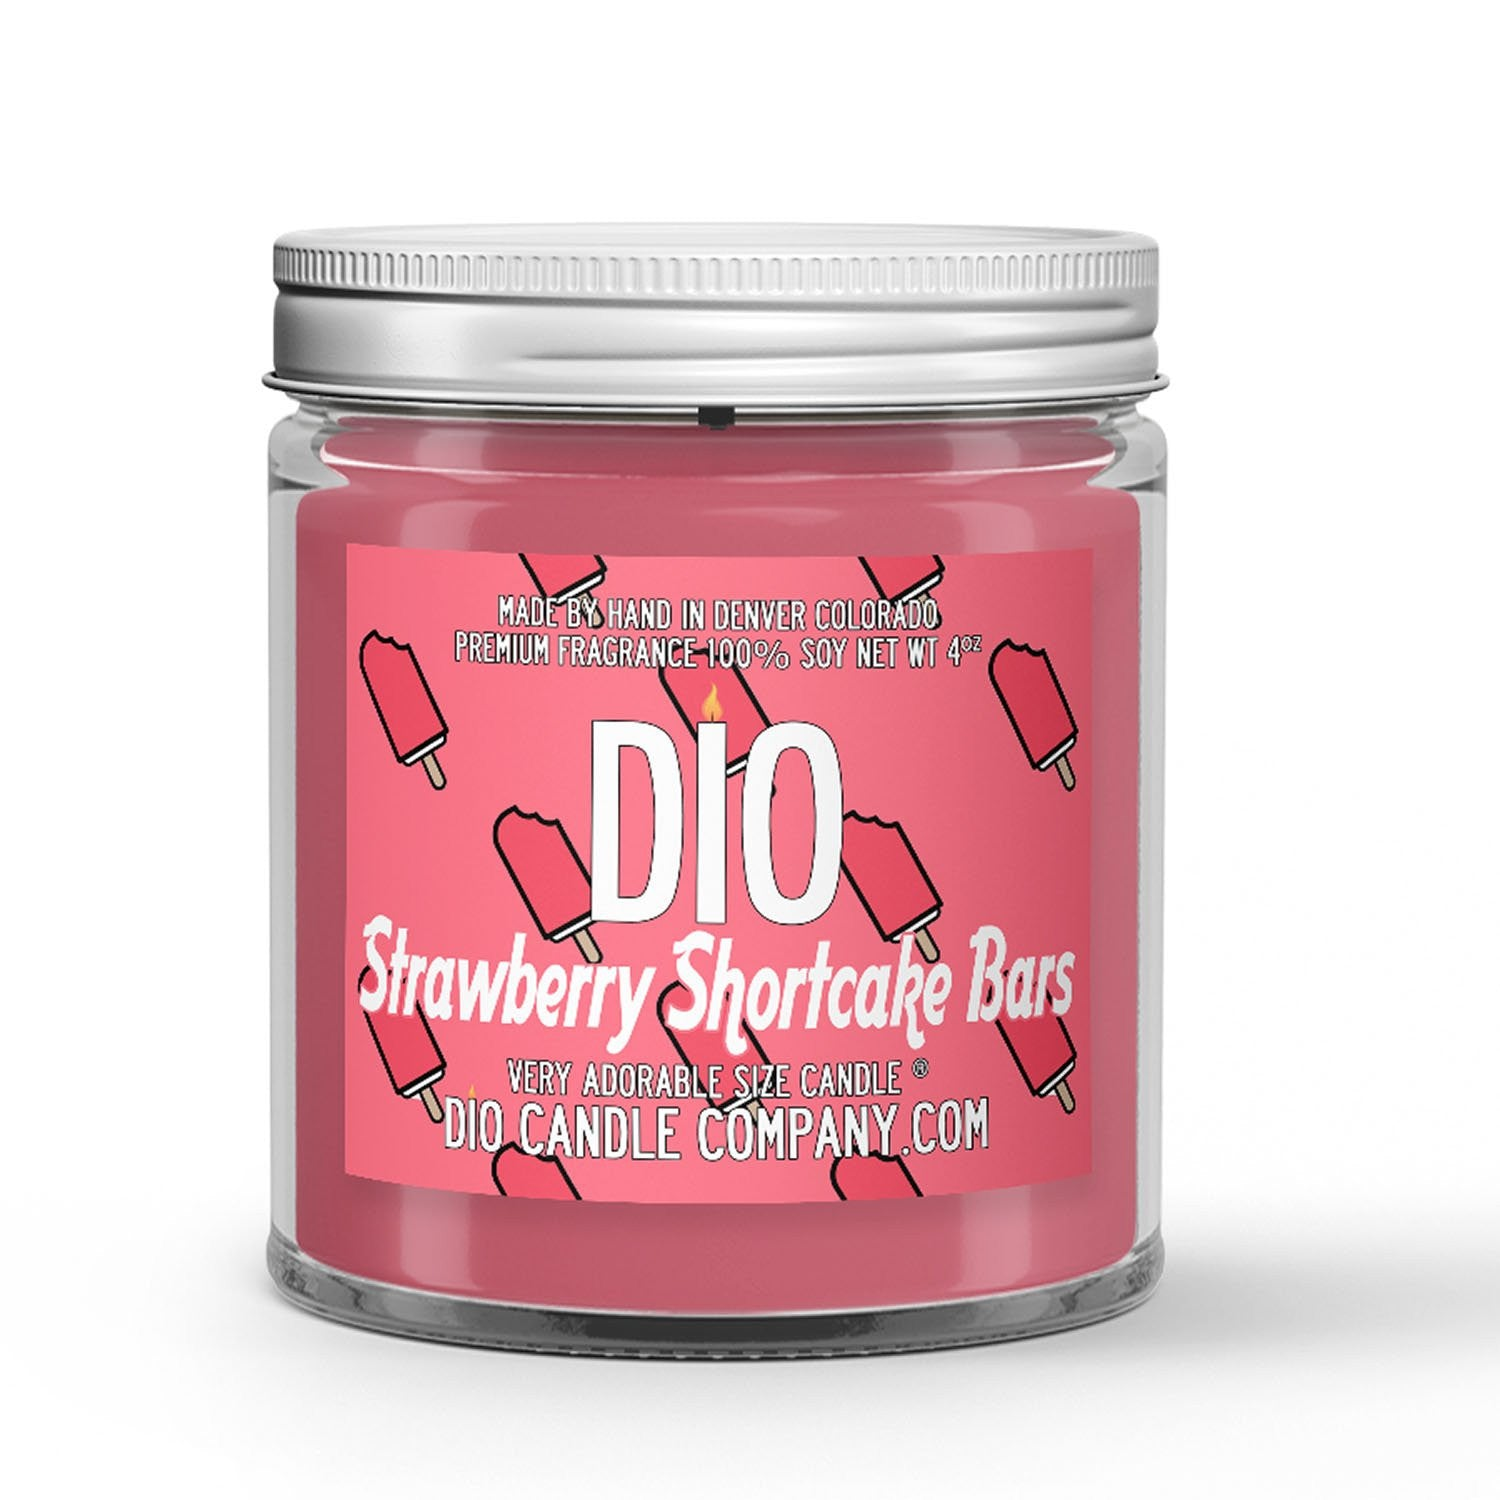 Strawberry Shortcake Ice Cream Candle Ice Cream - Strawberries - Cake Scented - Dio Candle Company